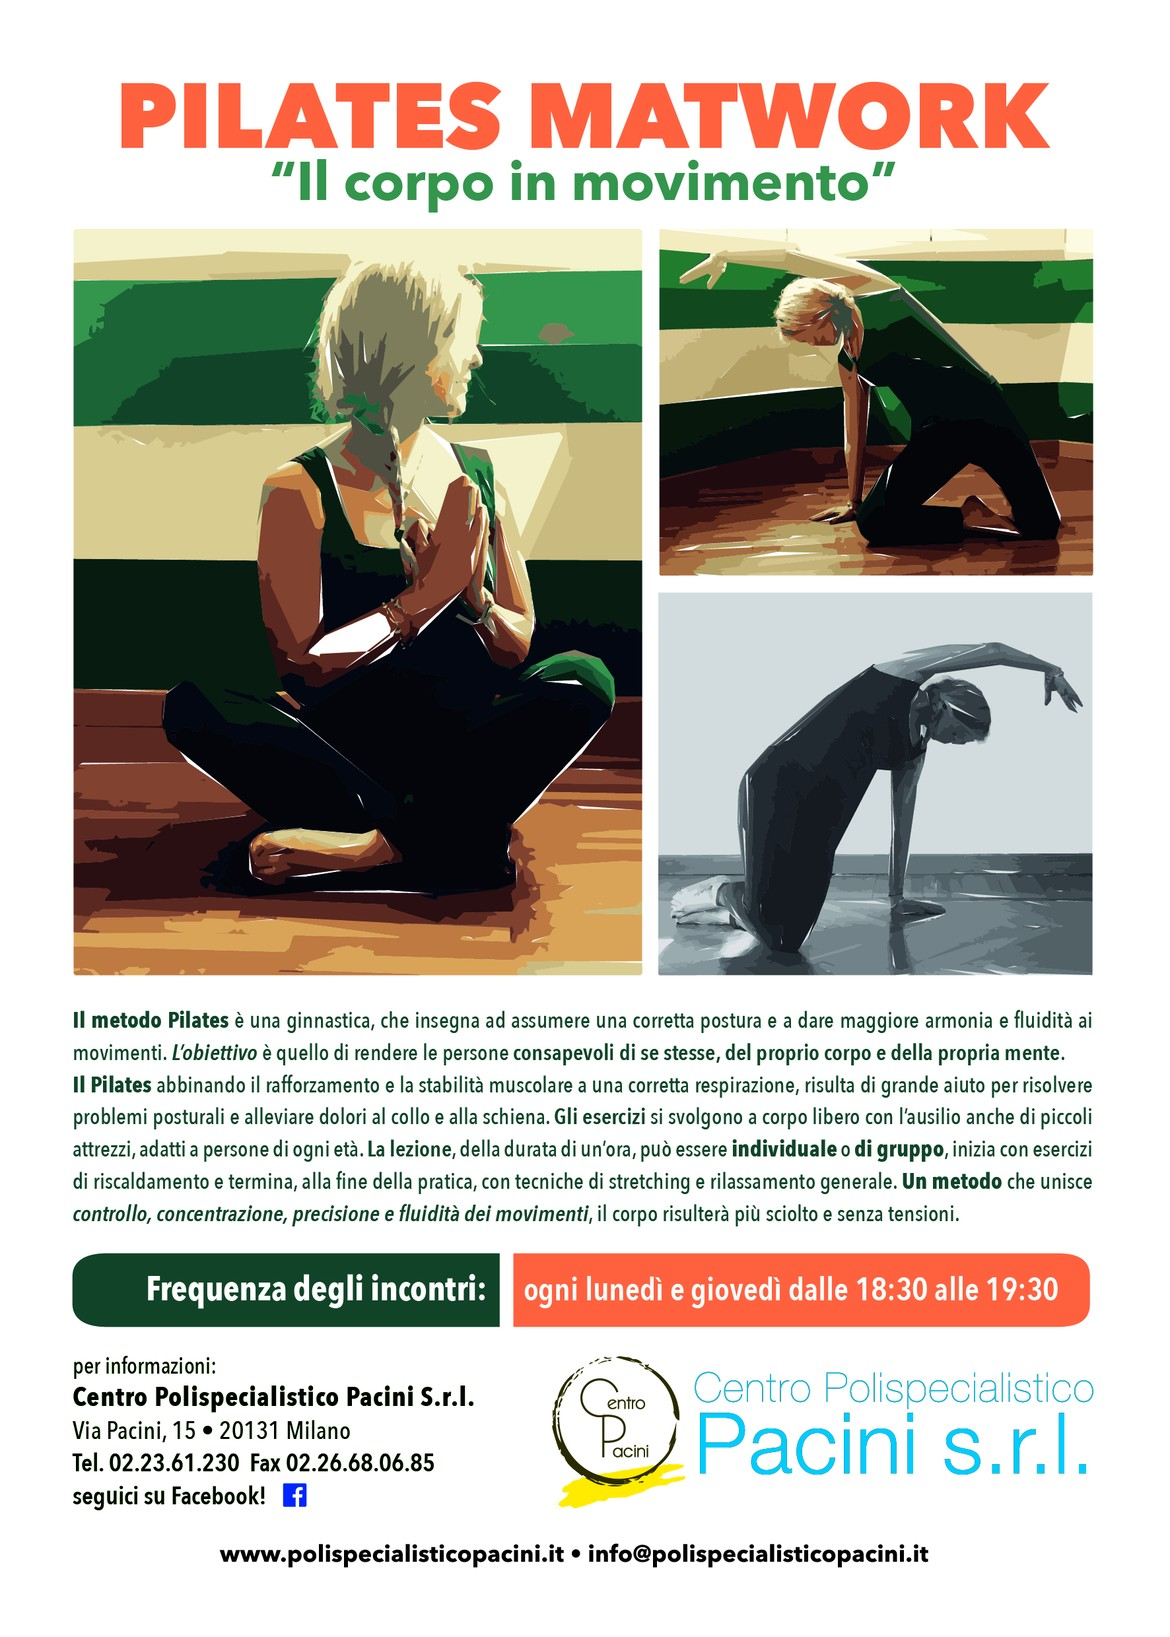 pilates-stampa-02.jpg__1170x0_q90_subsampling-2_upscale